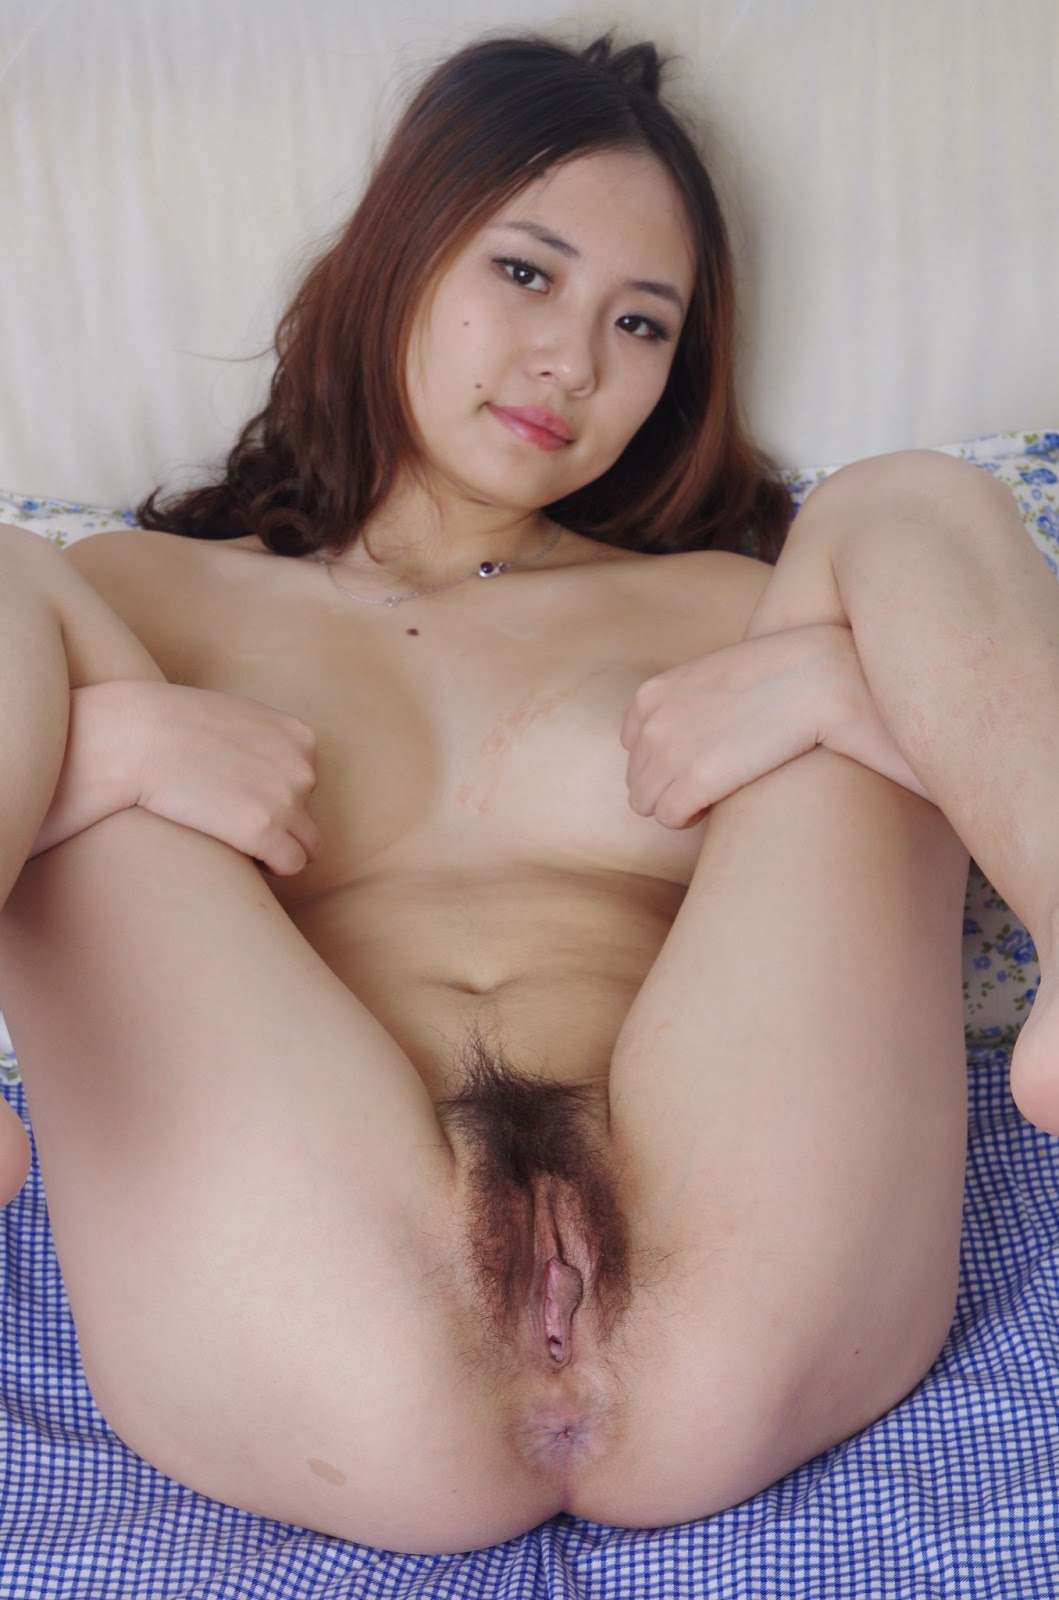 Nude asian woman japanese girl